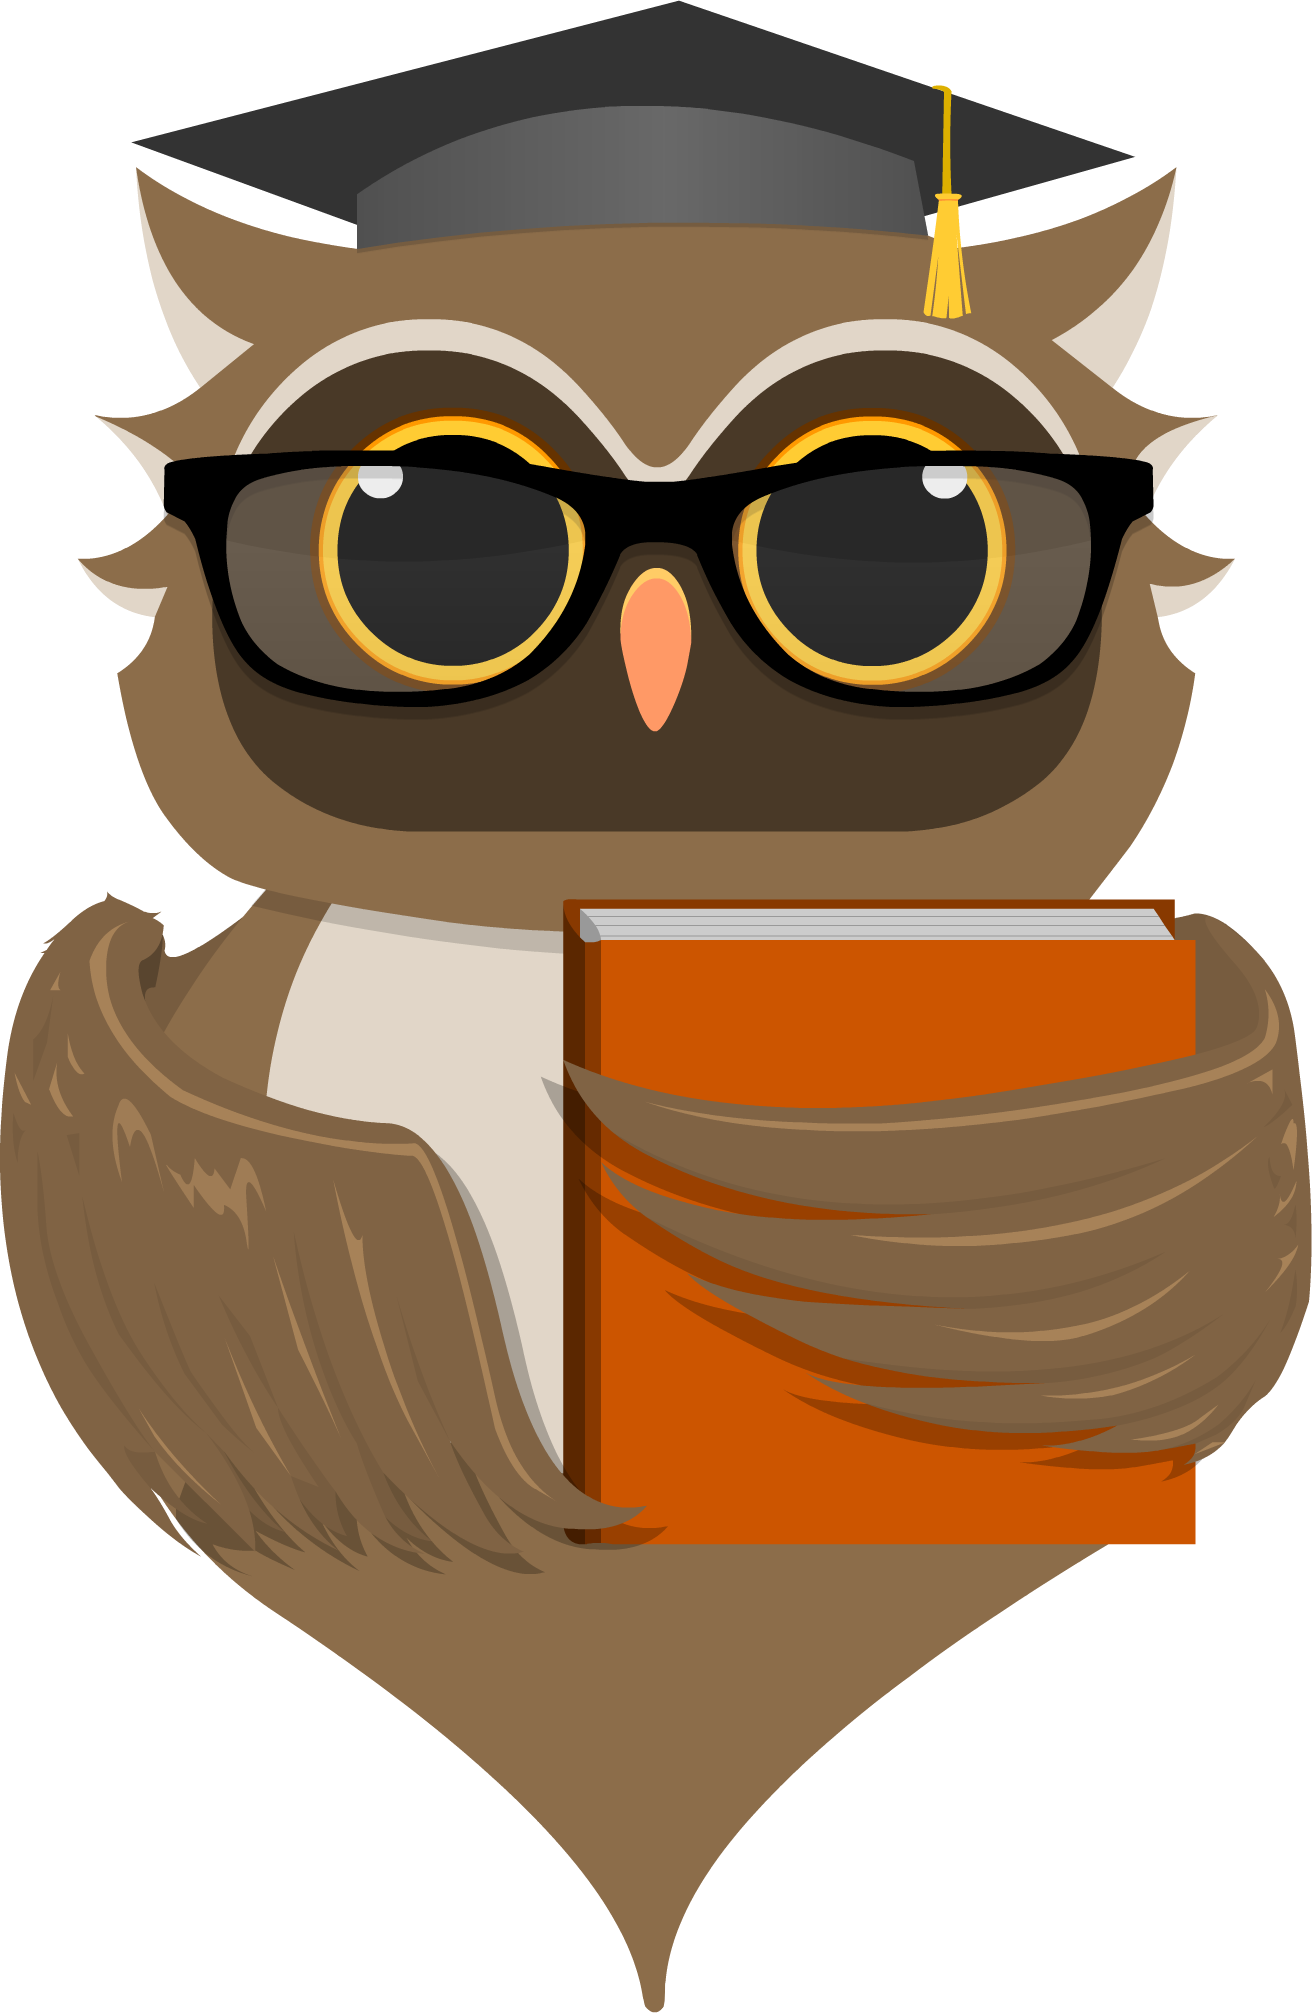 Eduwise Learning Is Currently In Development. - Wise Owl, Transparent background PNG HD thumbnail